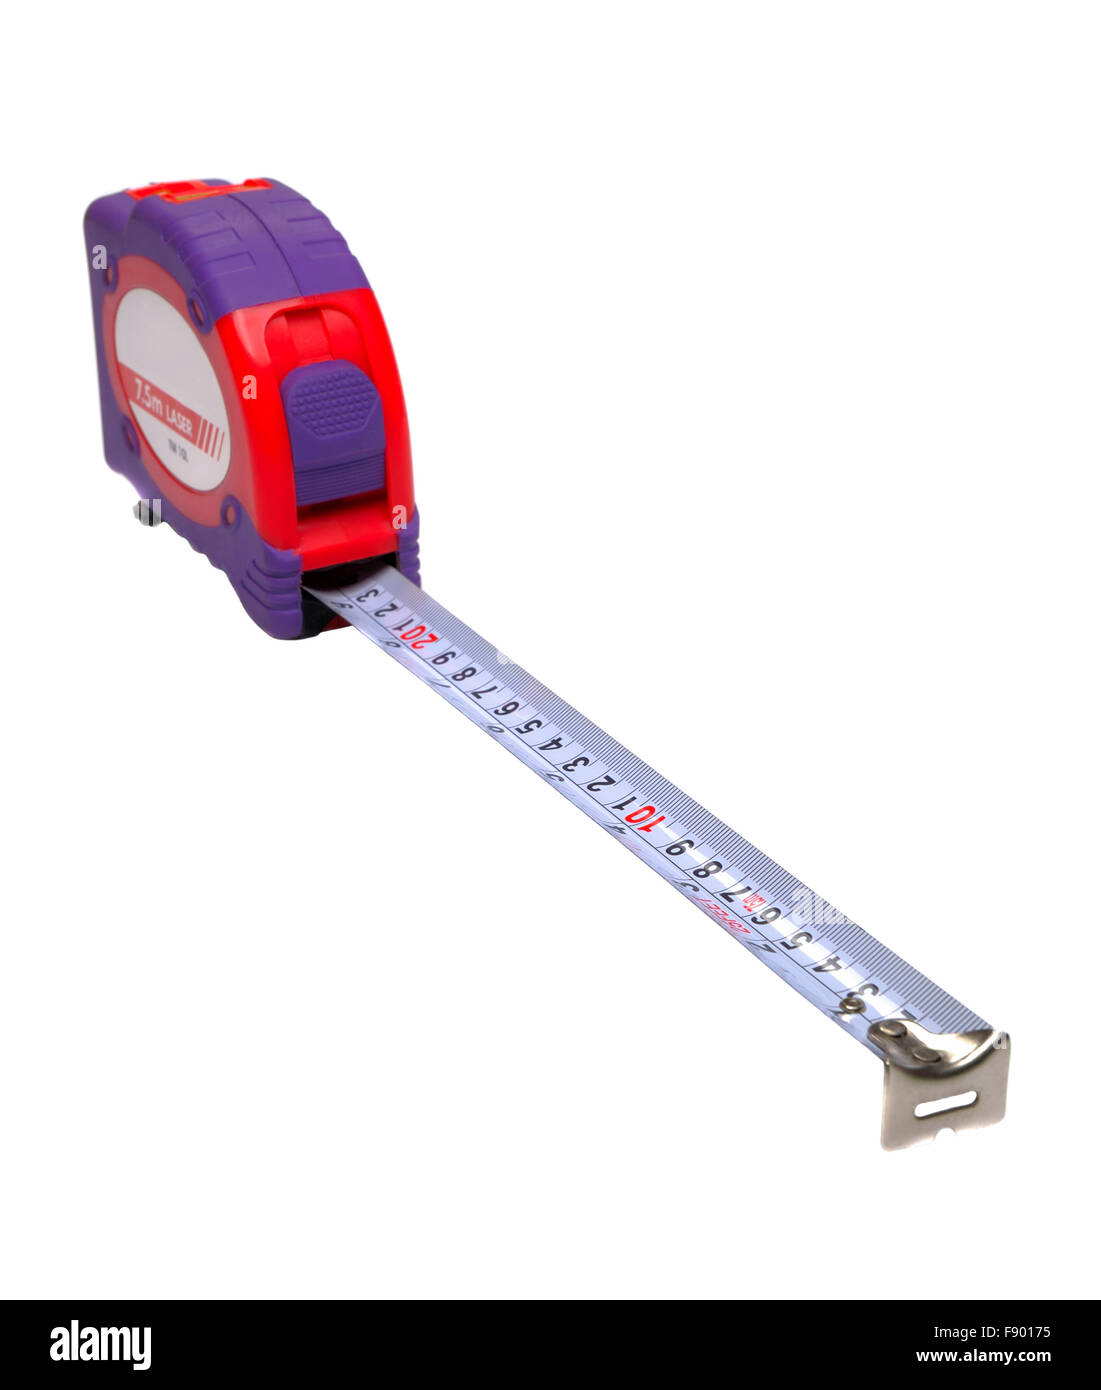 Tape measure on white background - Stock Image